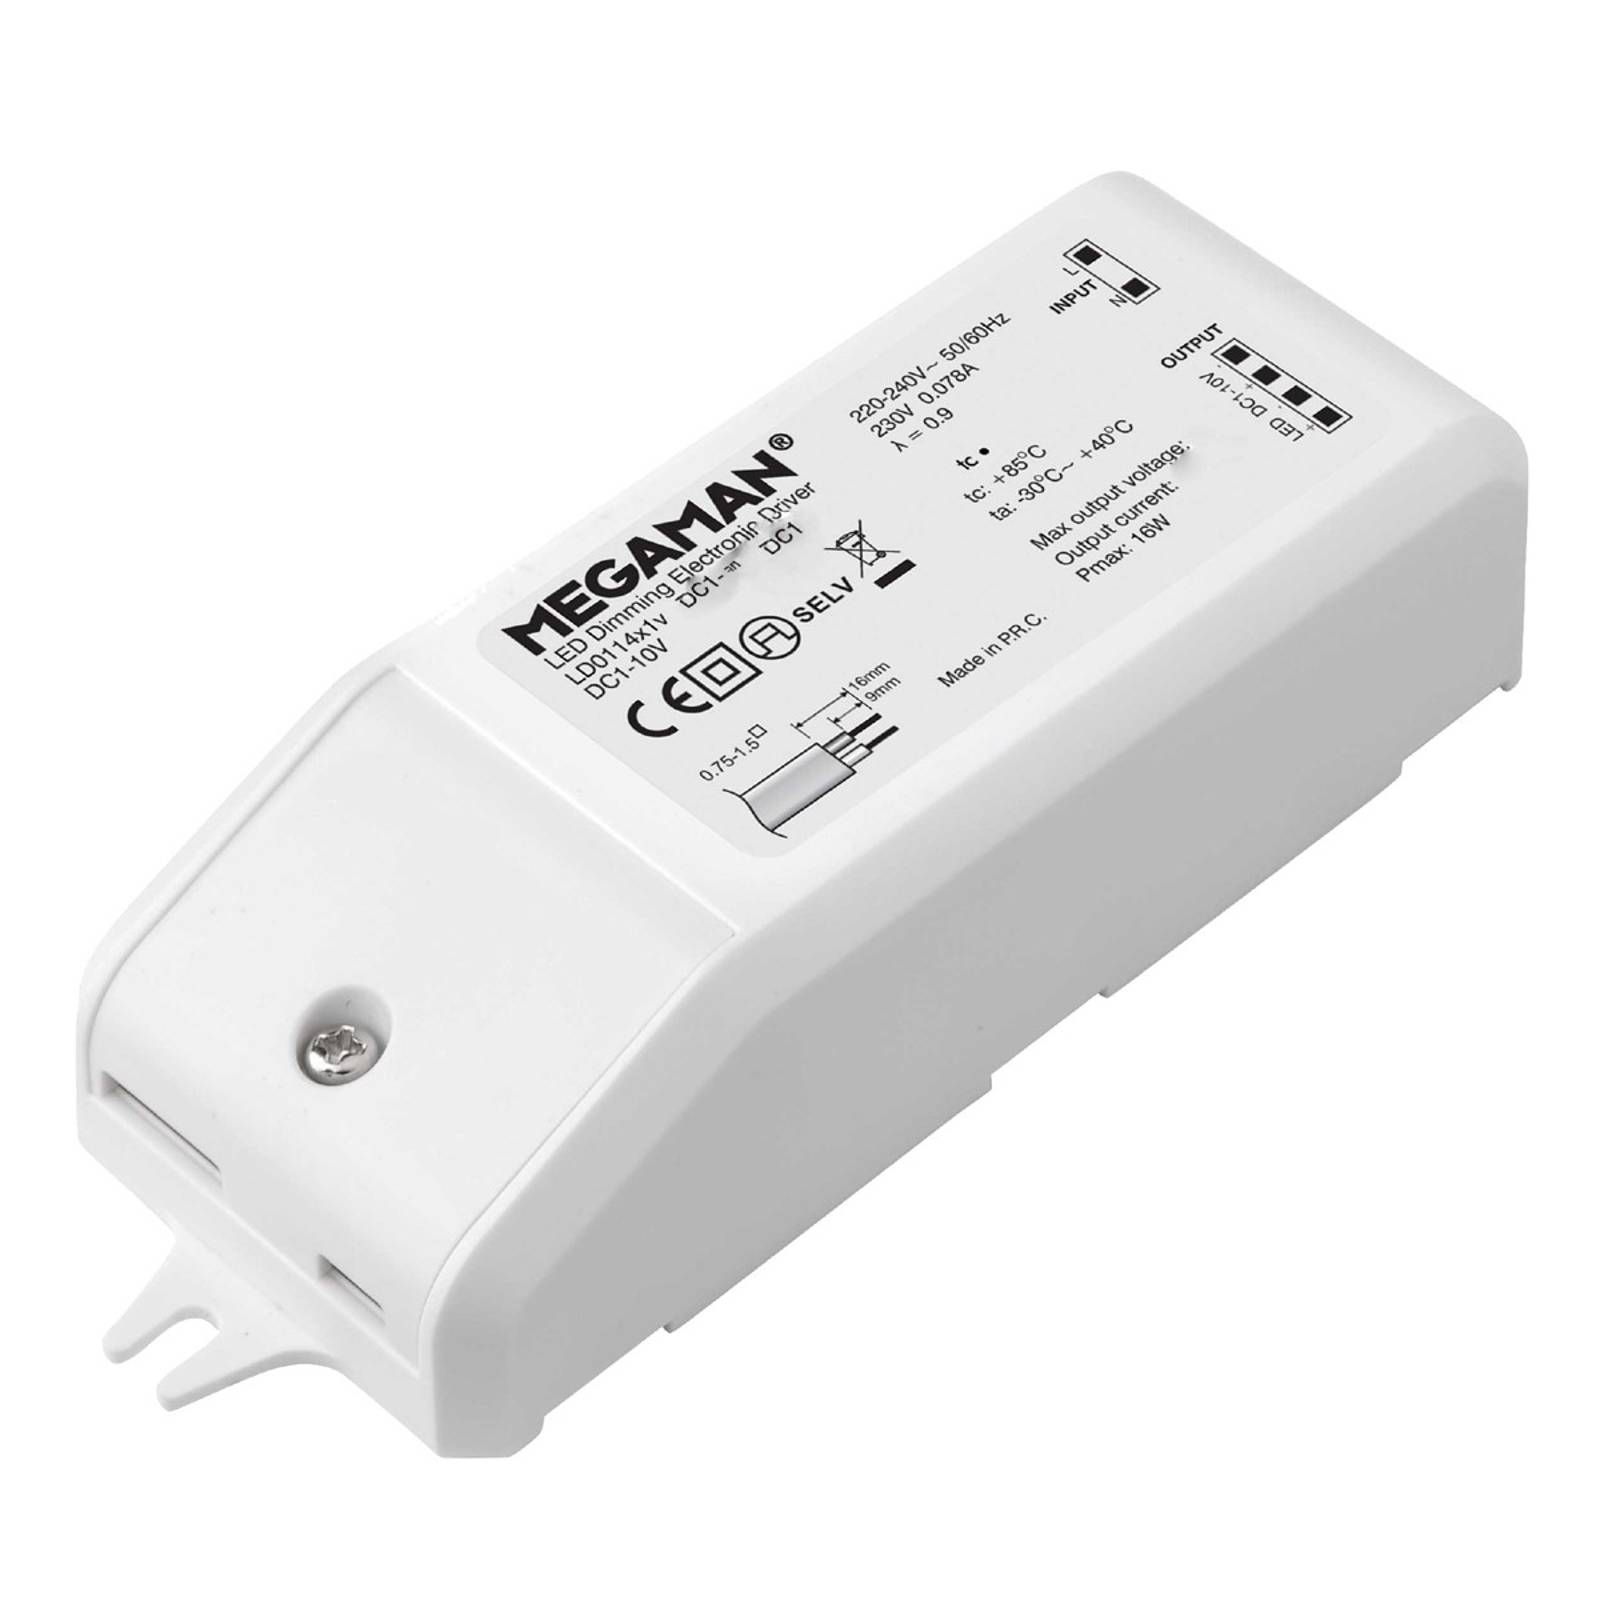 electronic driver DC 1-10 V 10 W, dimmable from Megaman